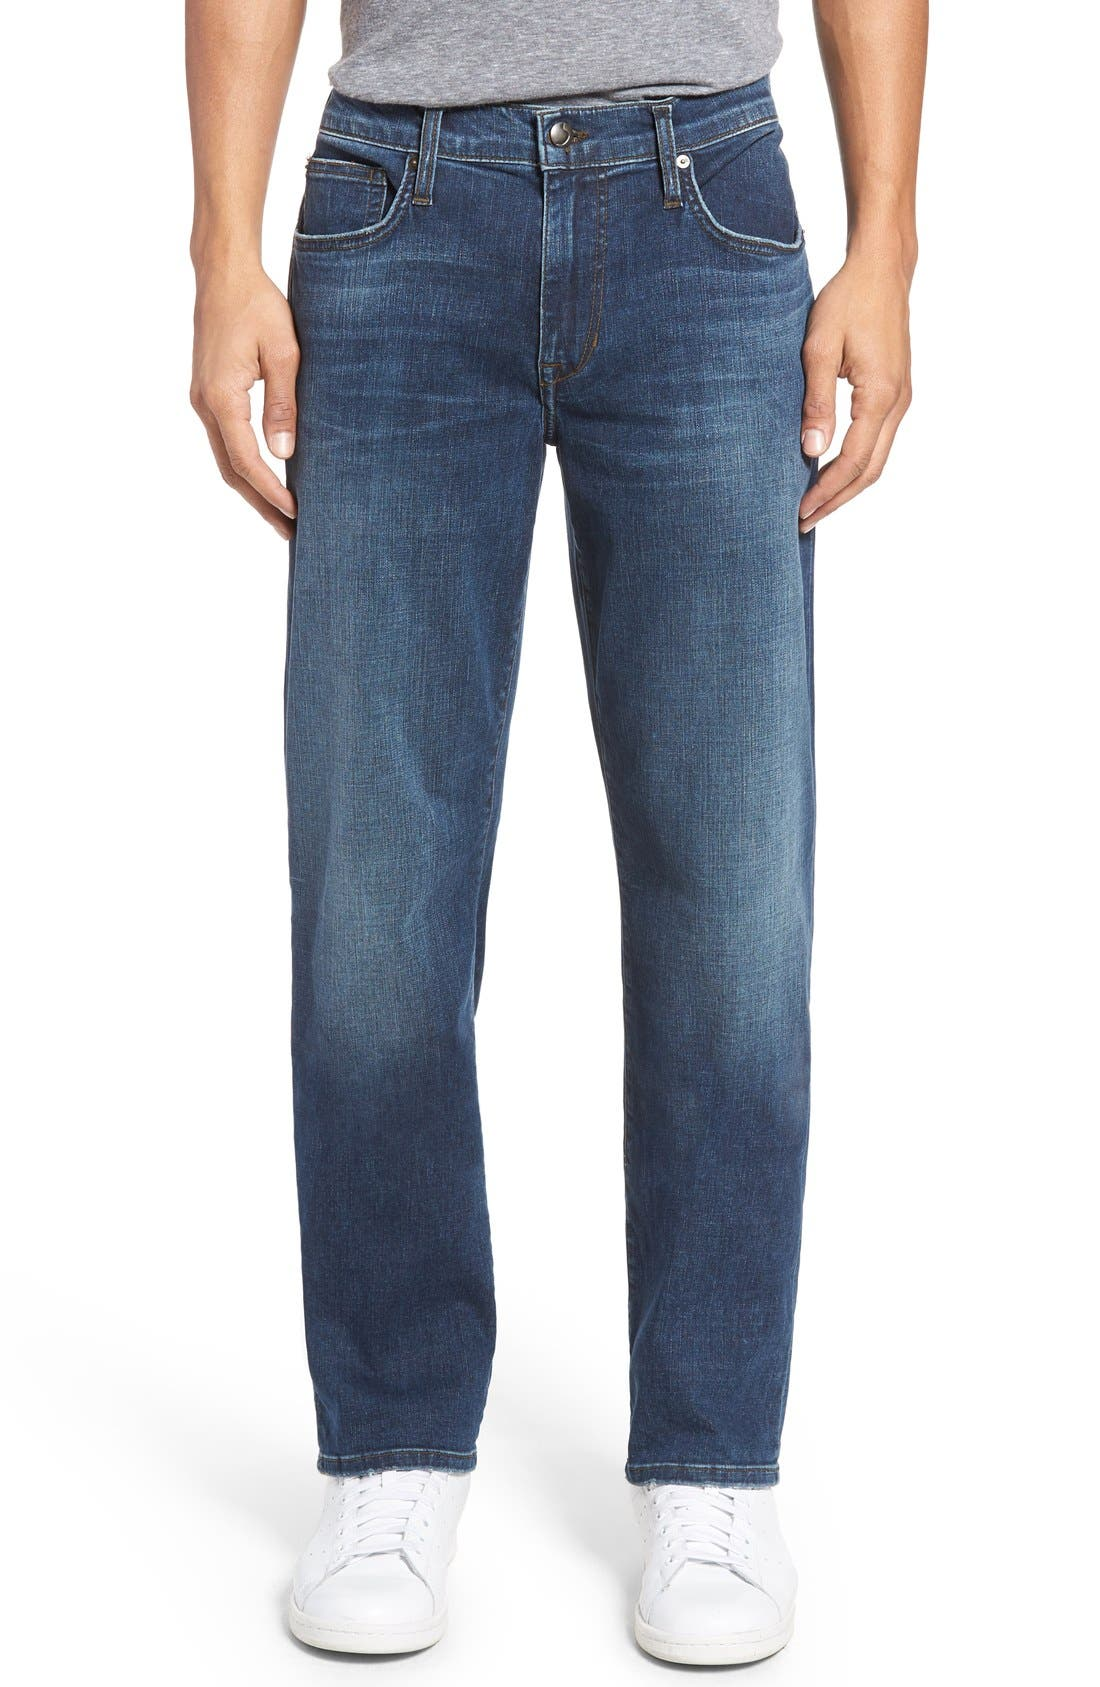 Brixton Slim Fit Jeans,                             Main thumbnail 1, color,                             400